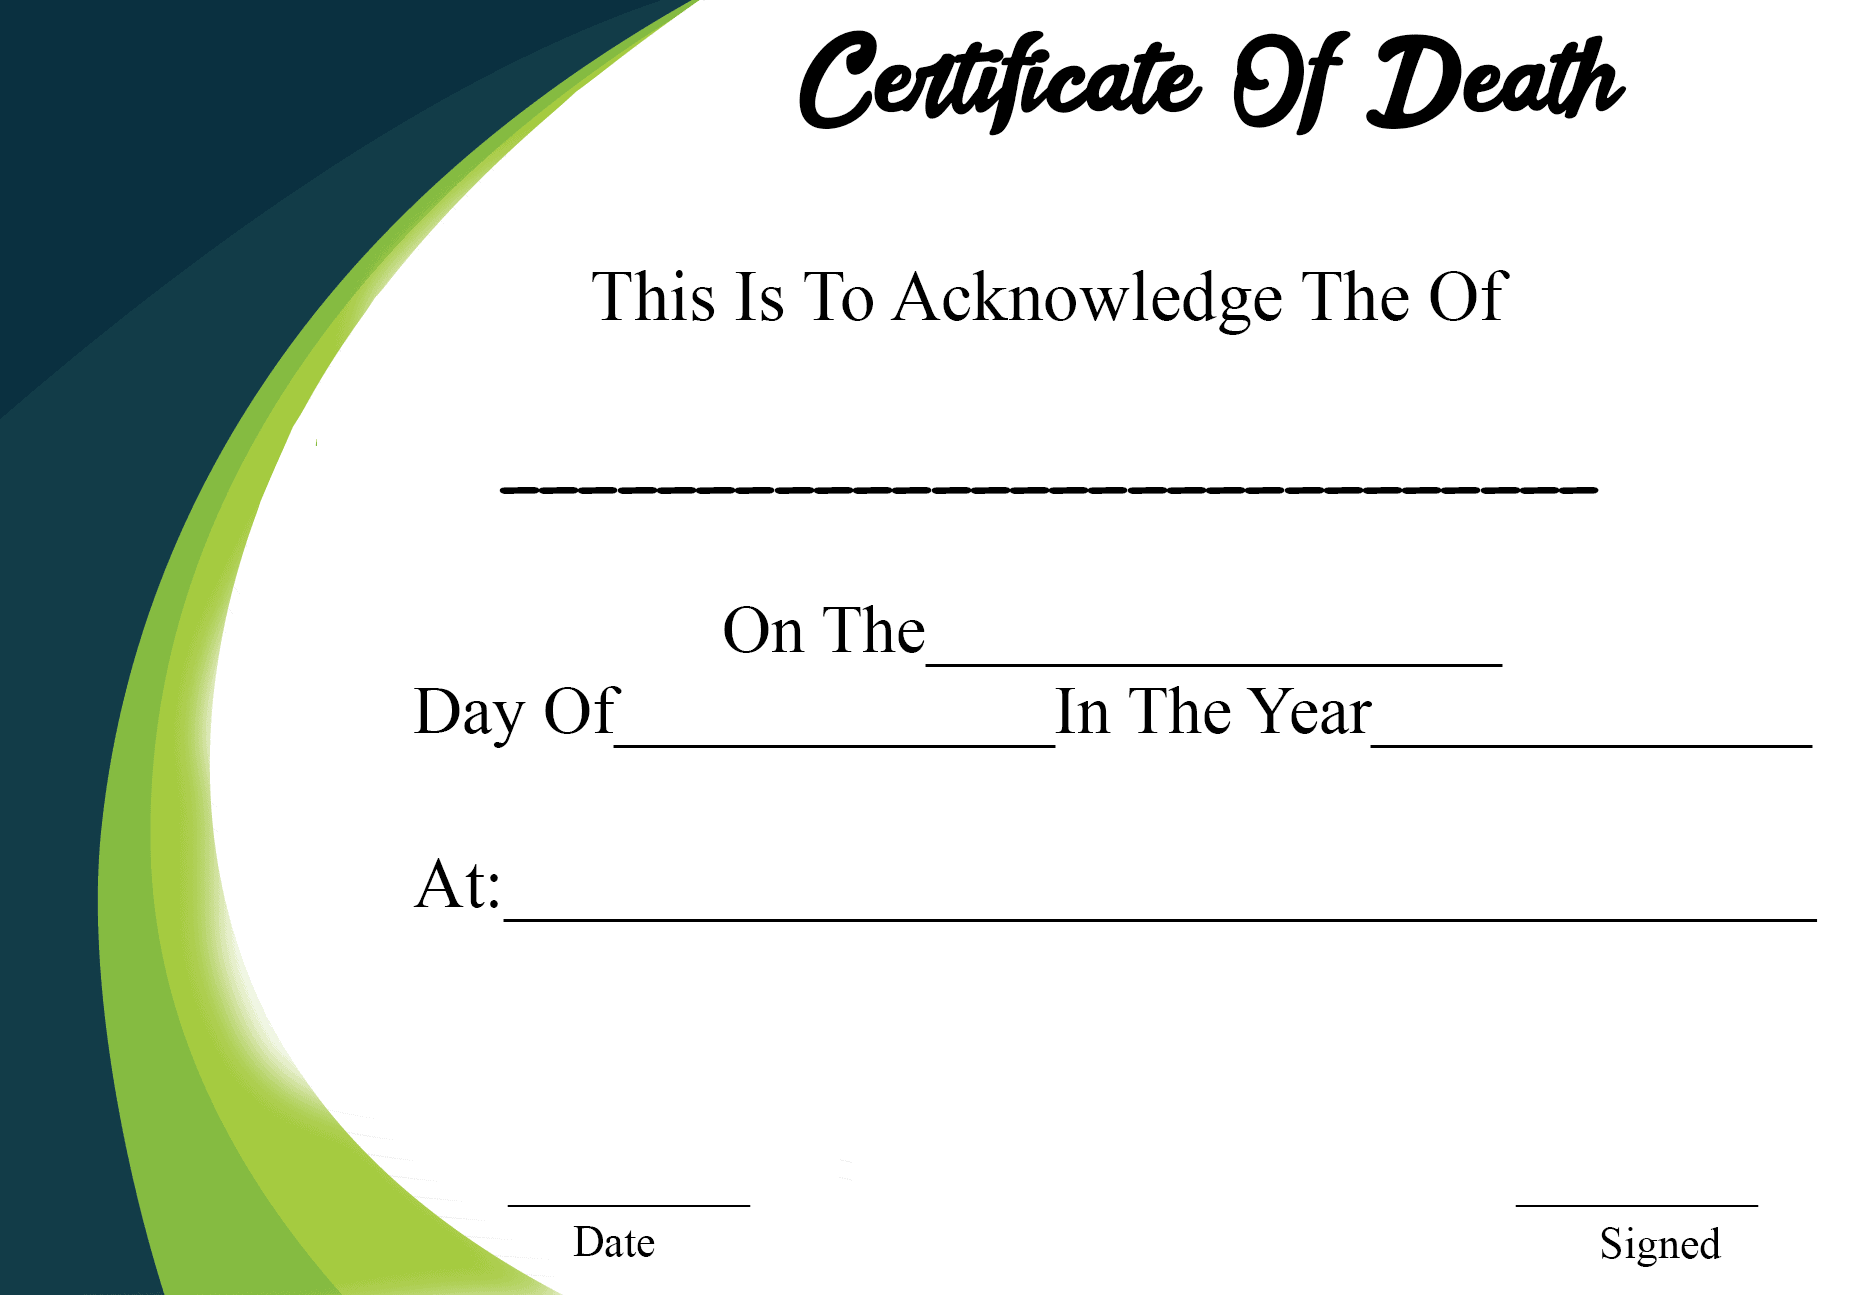 Requirement for Certificate of Death